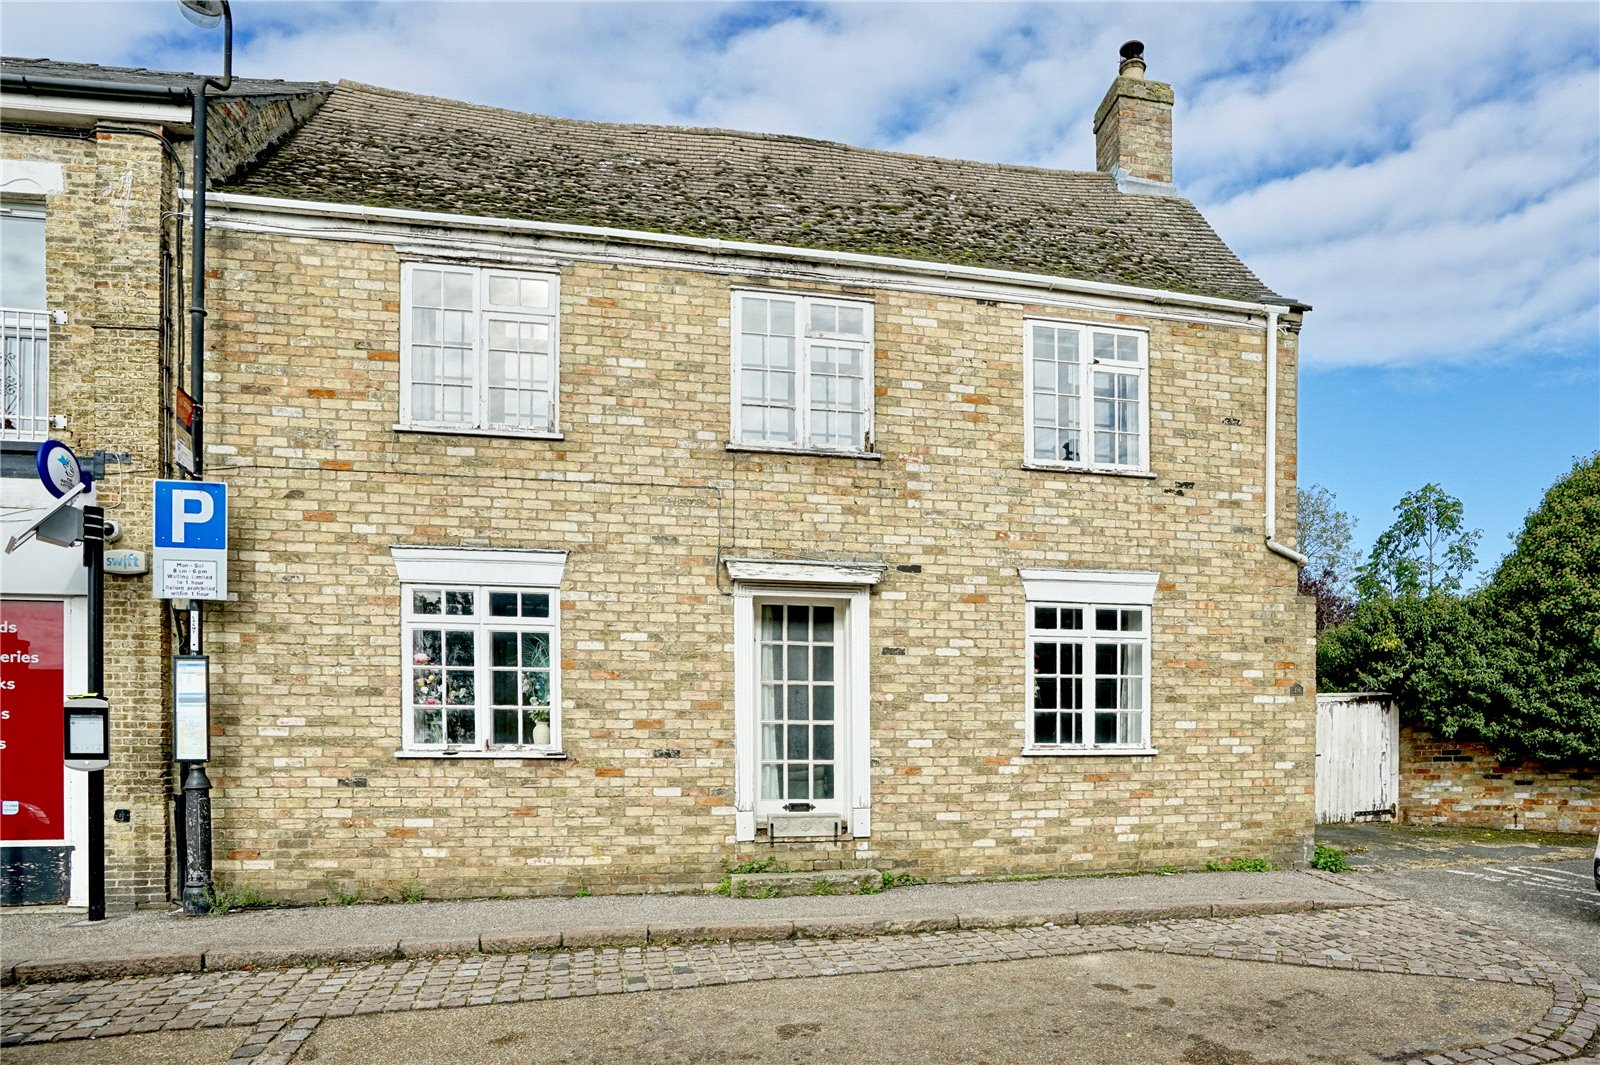 3 bed house for sale in Sutton, CB6 2RB 0